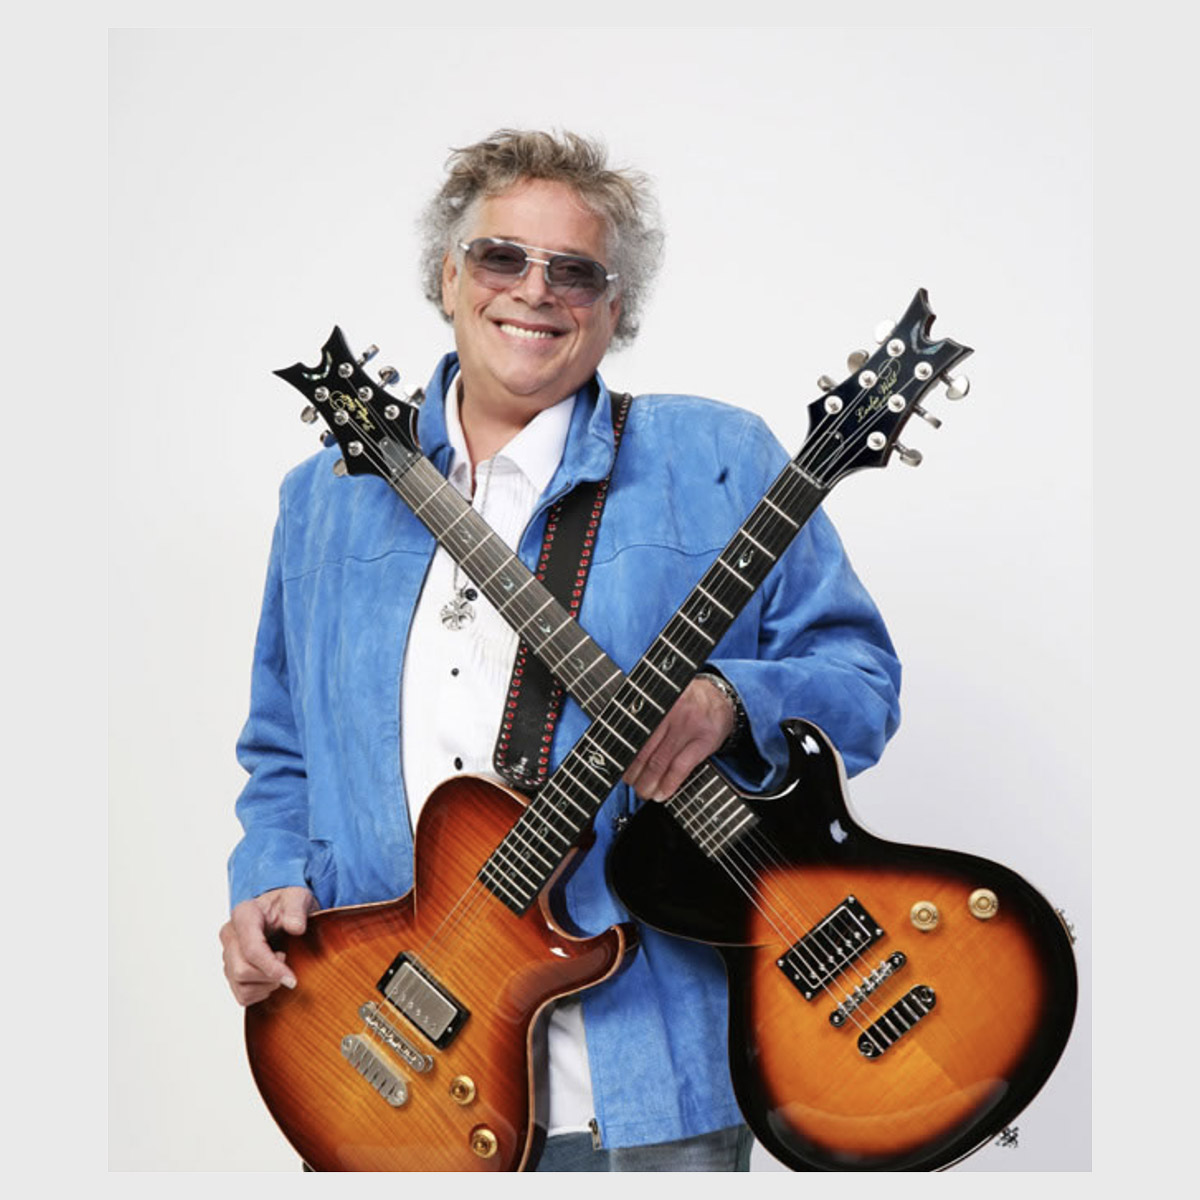 Leslie West in a recent promo photo